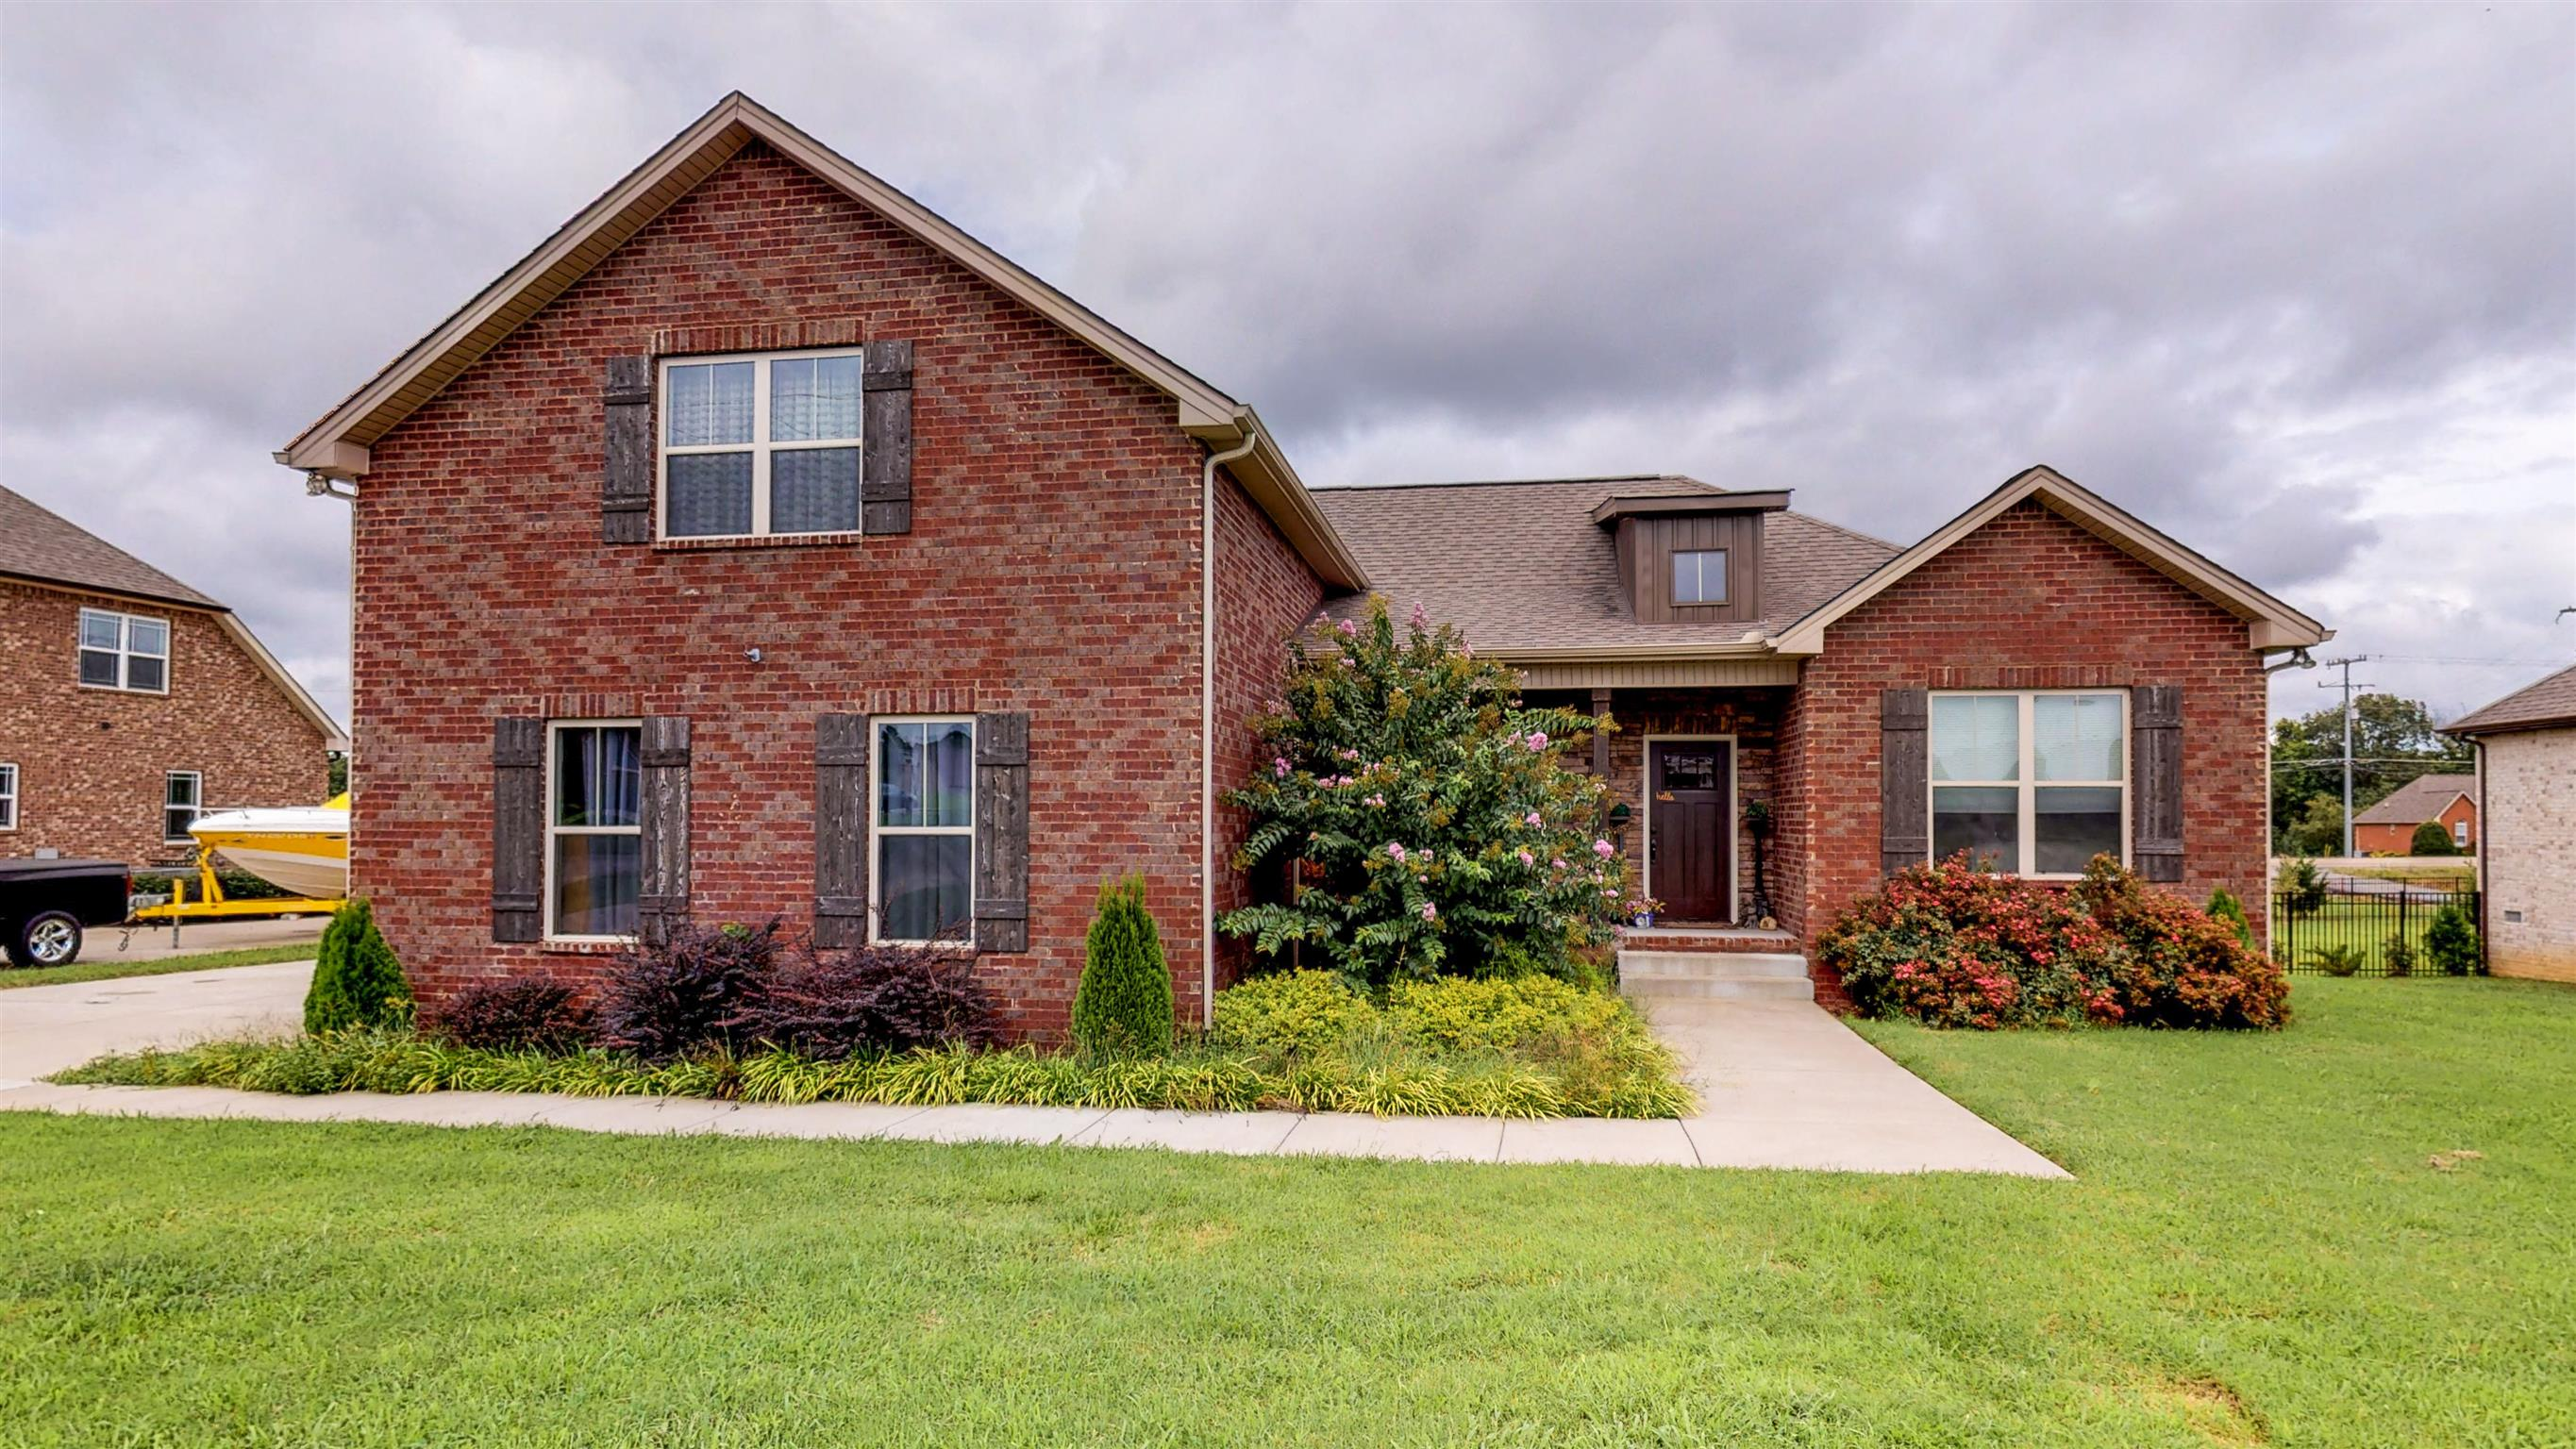 $349,900 - 3Br/2Ba -  for Sale in Westbrook Place Sec 1, Greenbrier